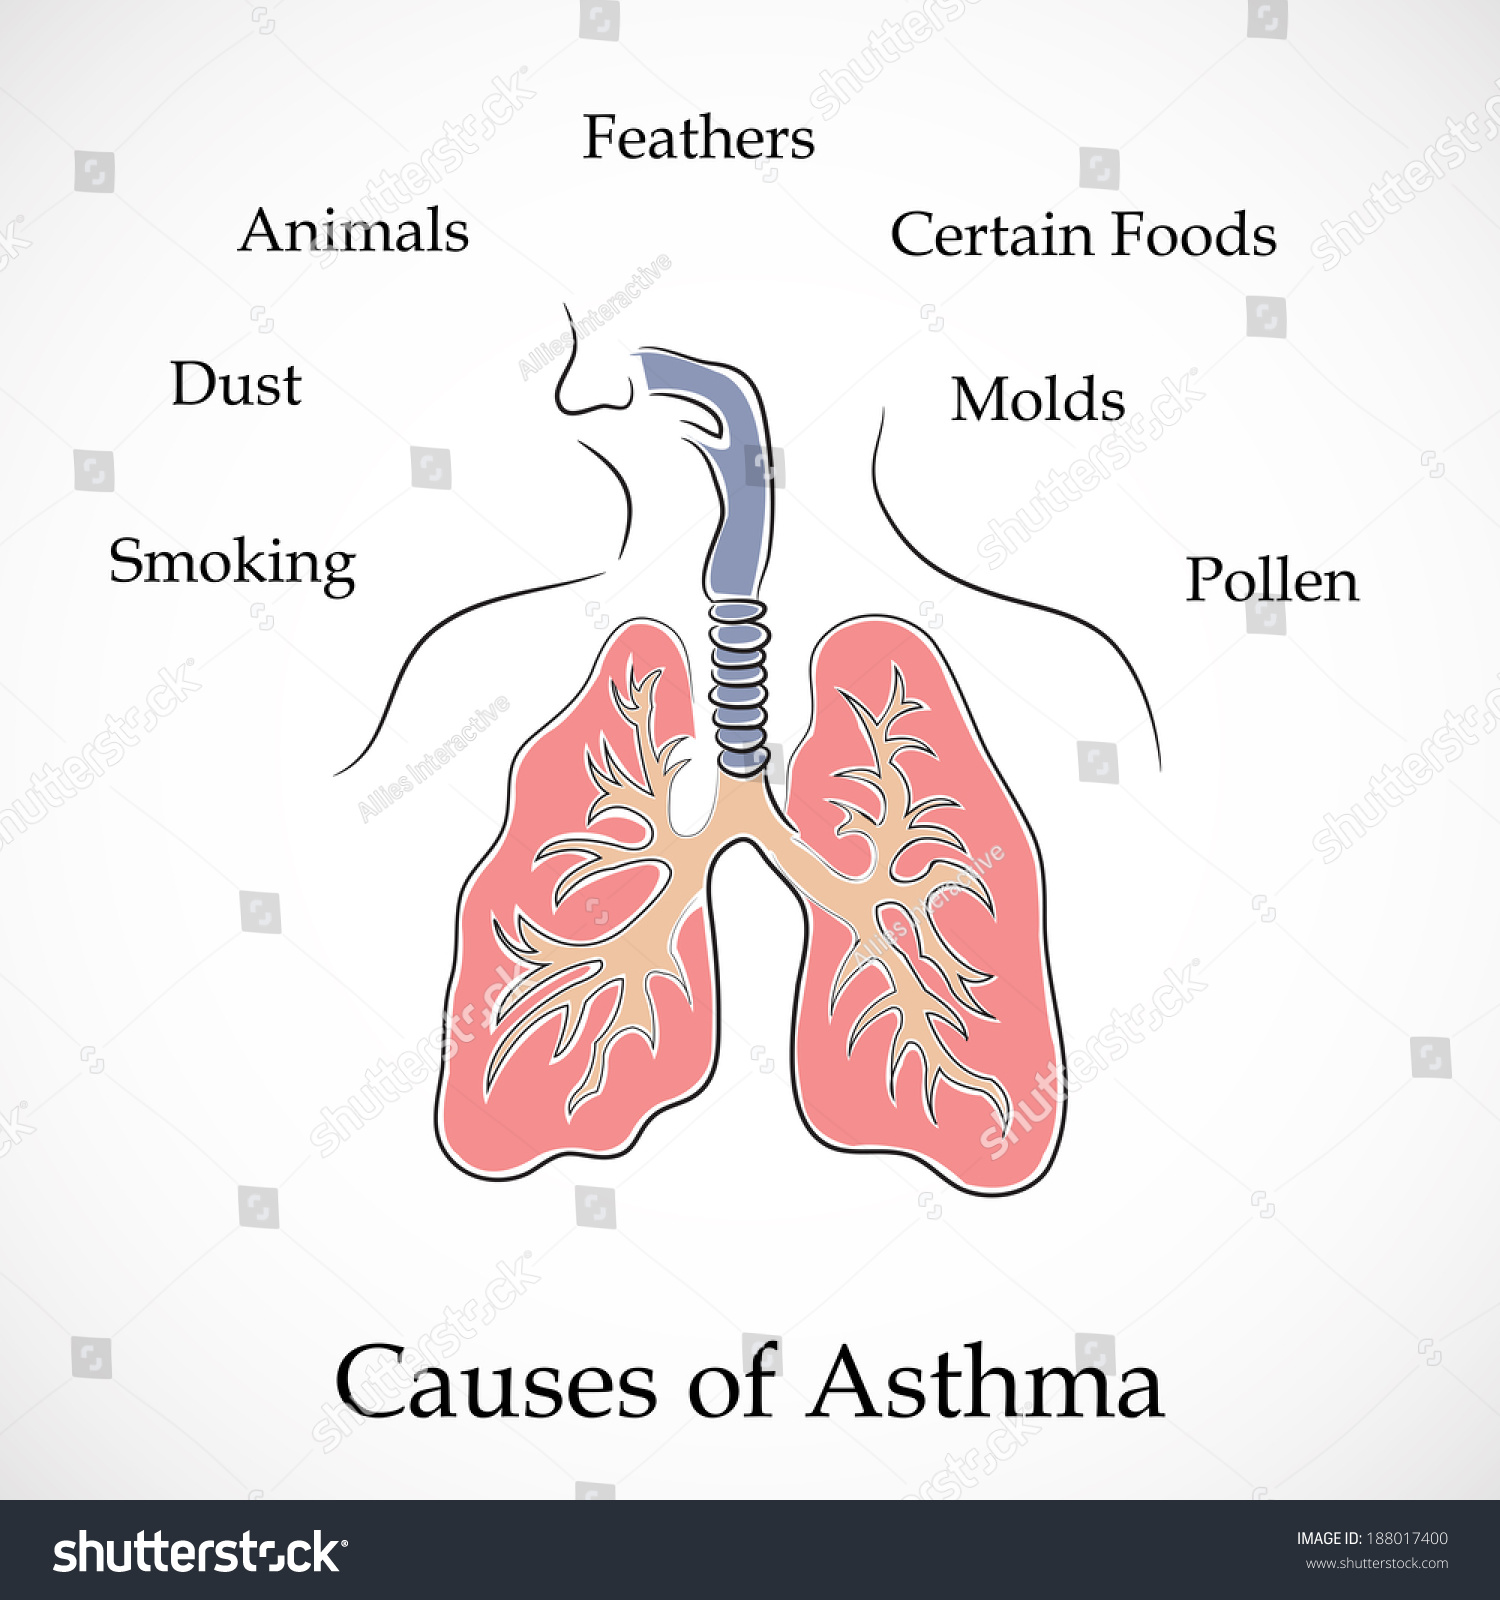 Illustration human lungs causes asthma on stock vector 188017400 illustration of human lungs and causes of asthma on grey background ccuart Gallery